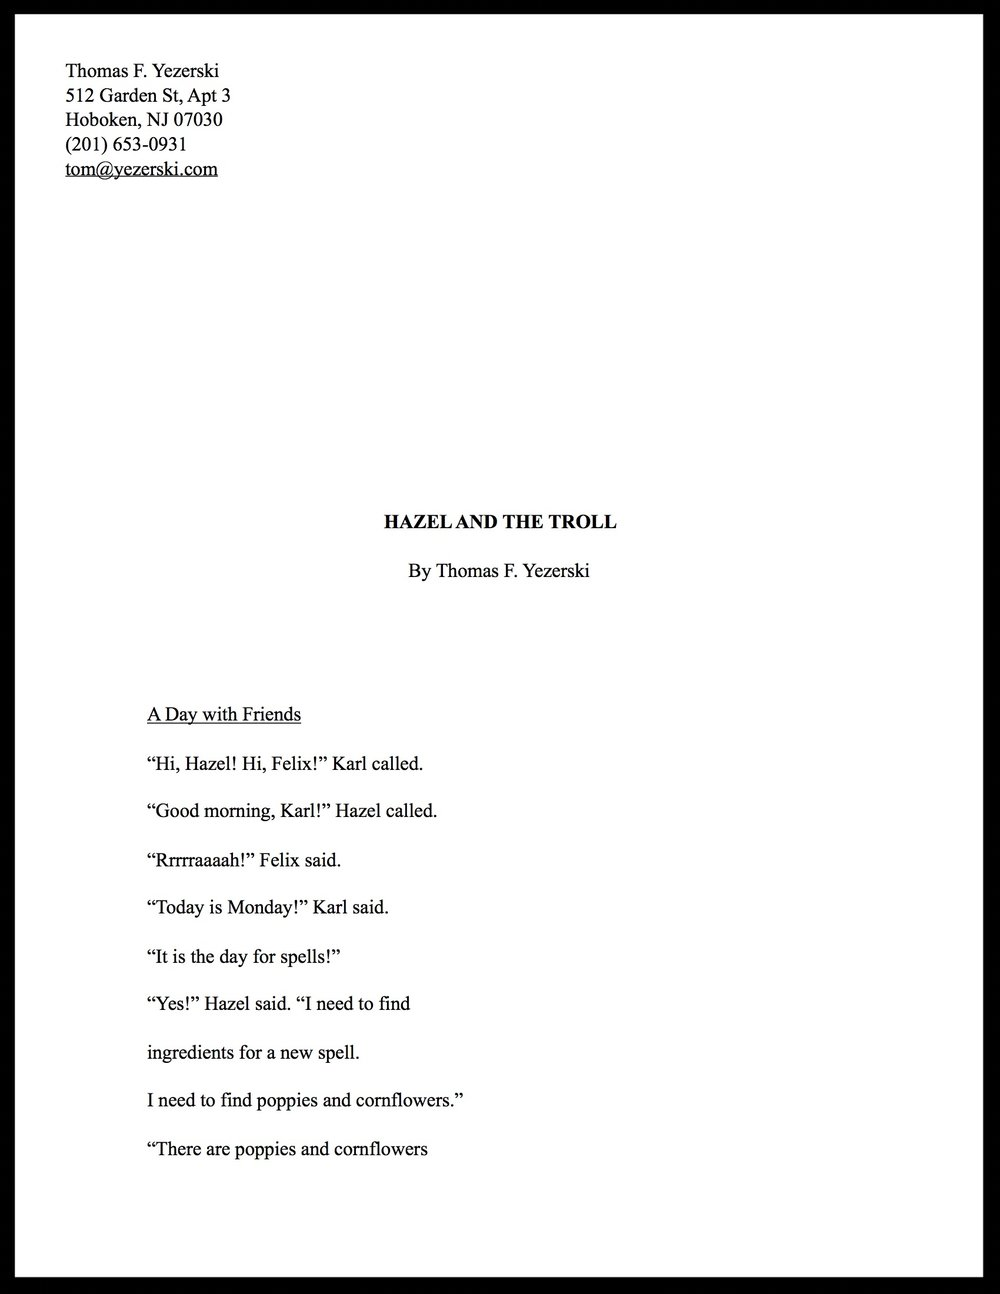 Hazel and the Troll (Manuscript)